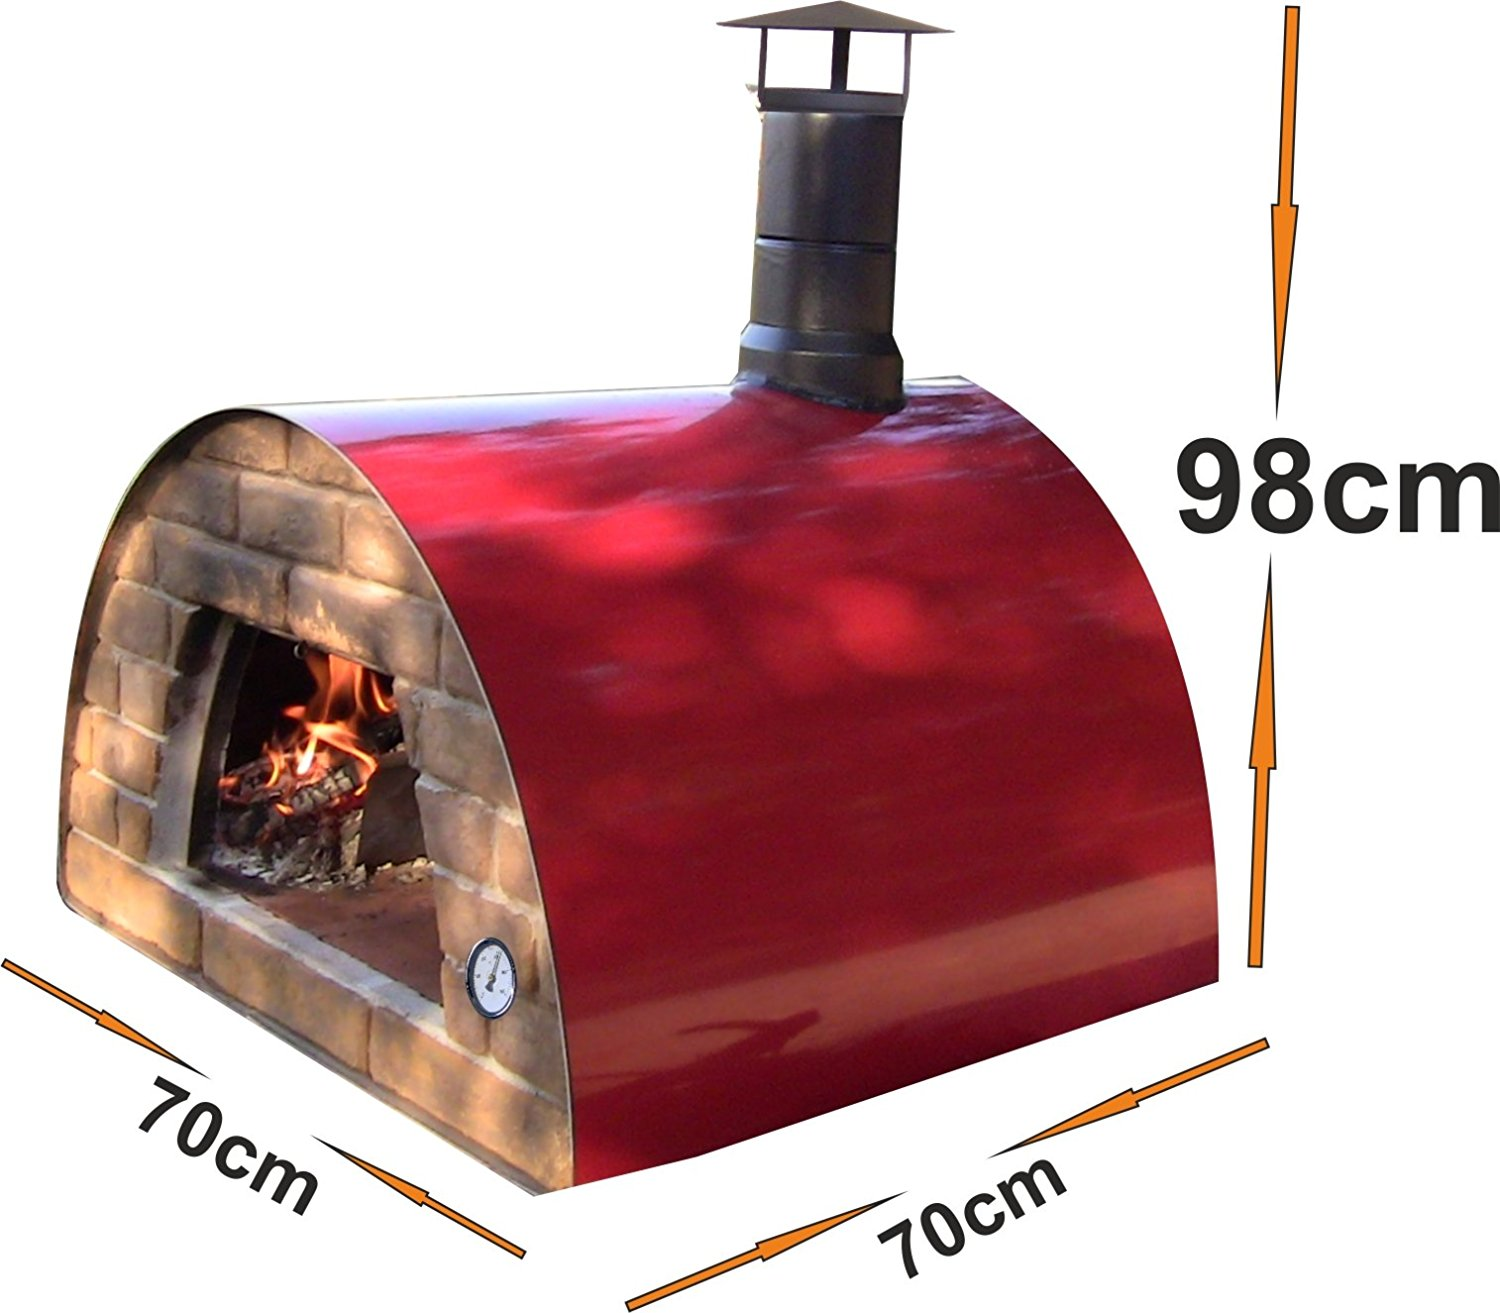 Authentic Pizza Ovens Maximus Portable Outdoor Wood Fired Pizza Oven